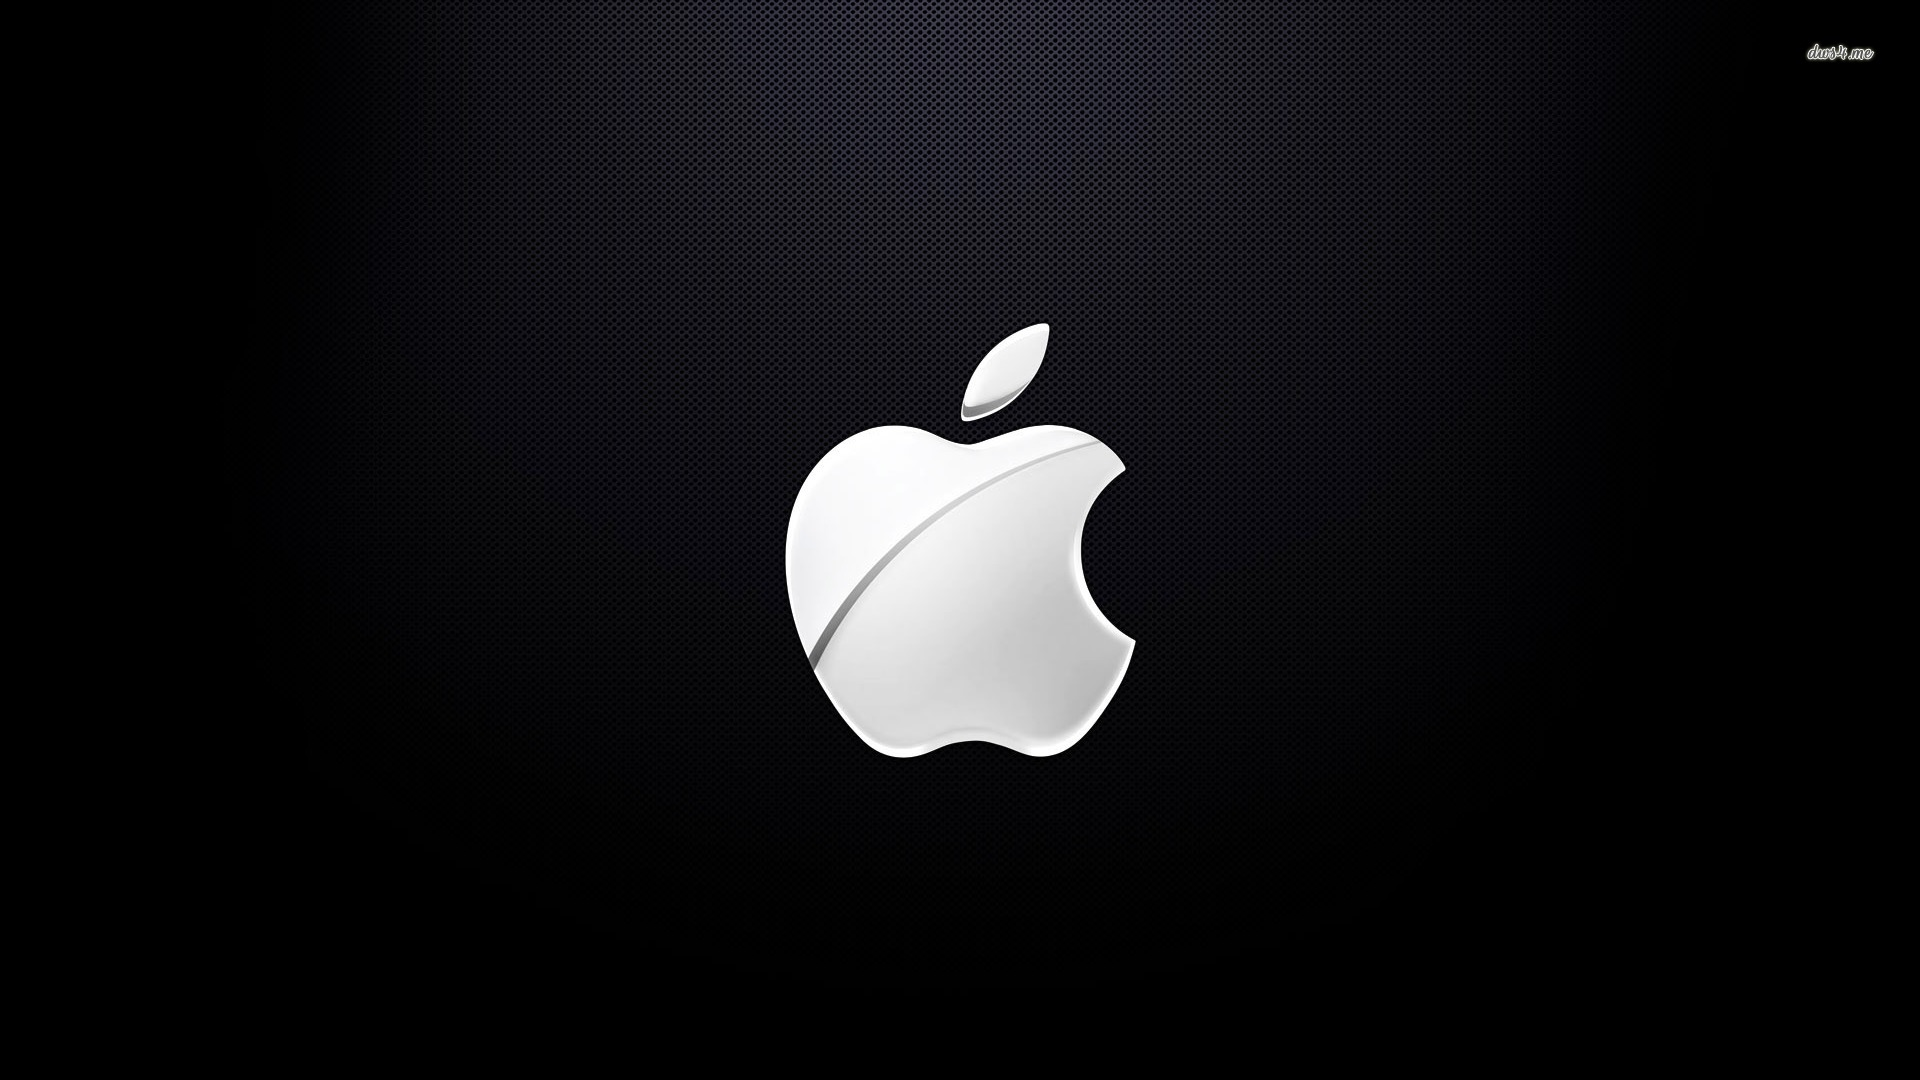 Apple Logo Pictures Black and White HD Wallpaper of Black and White 1920x1080